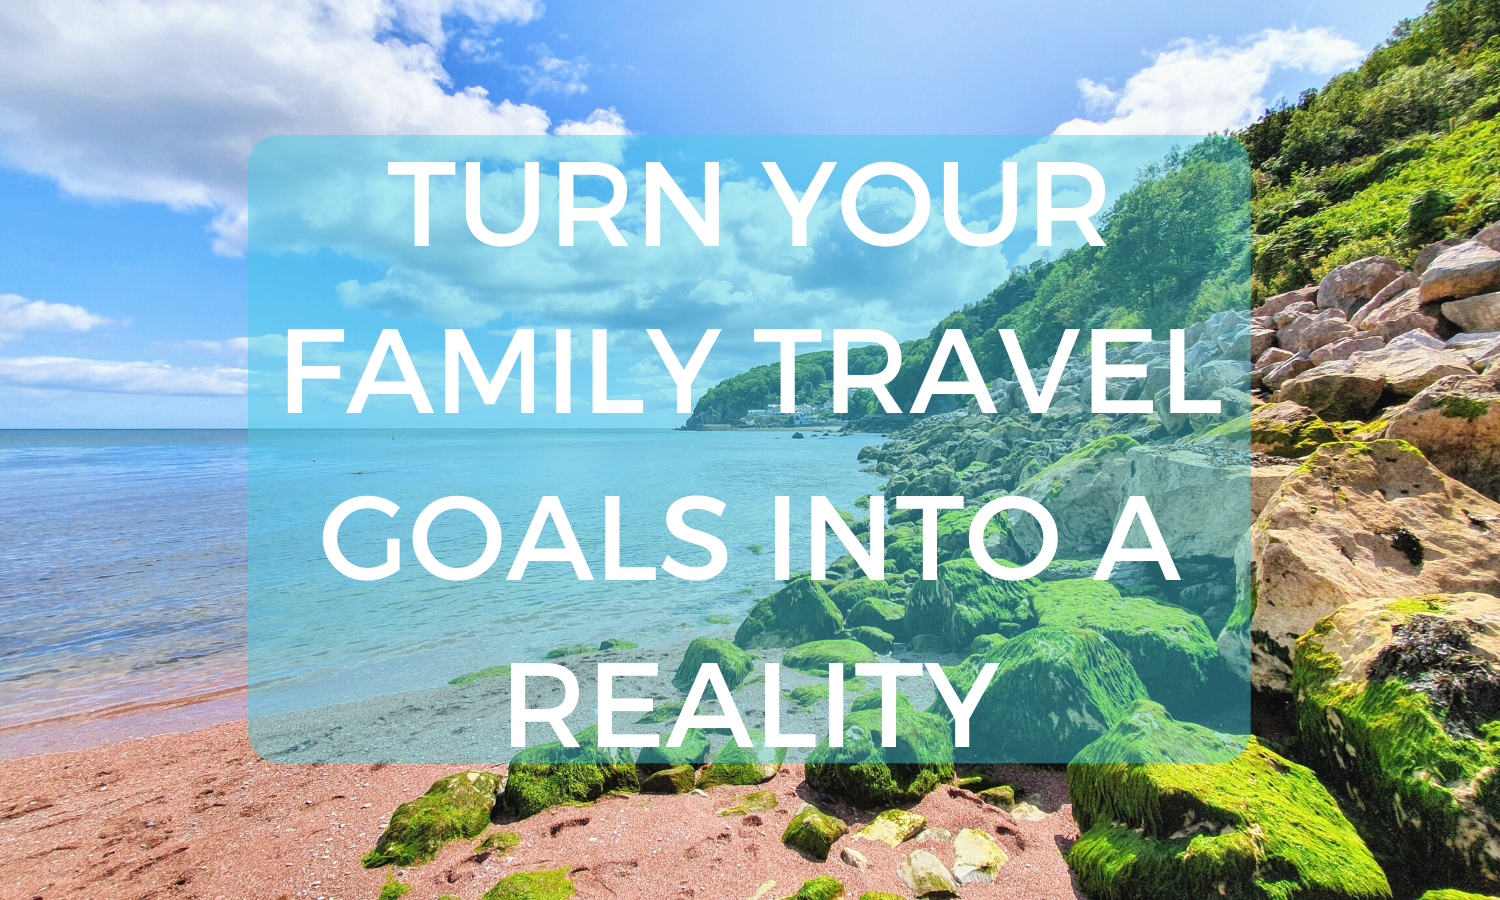 Turn your travel goals into a reality